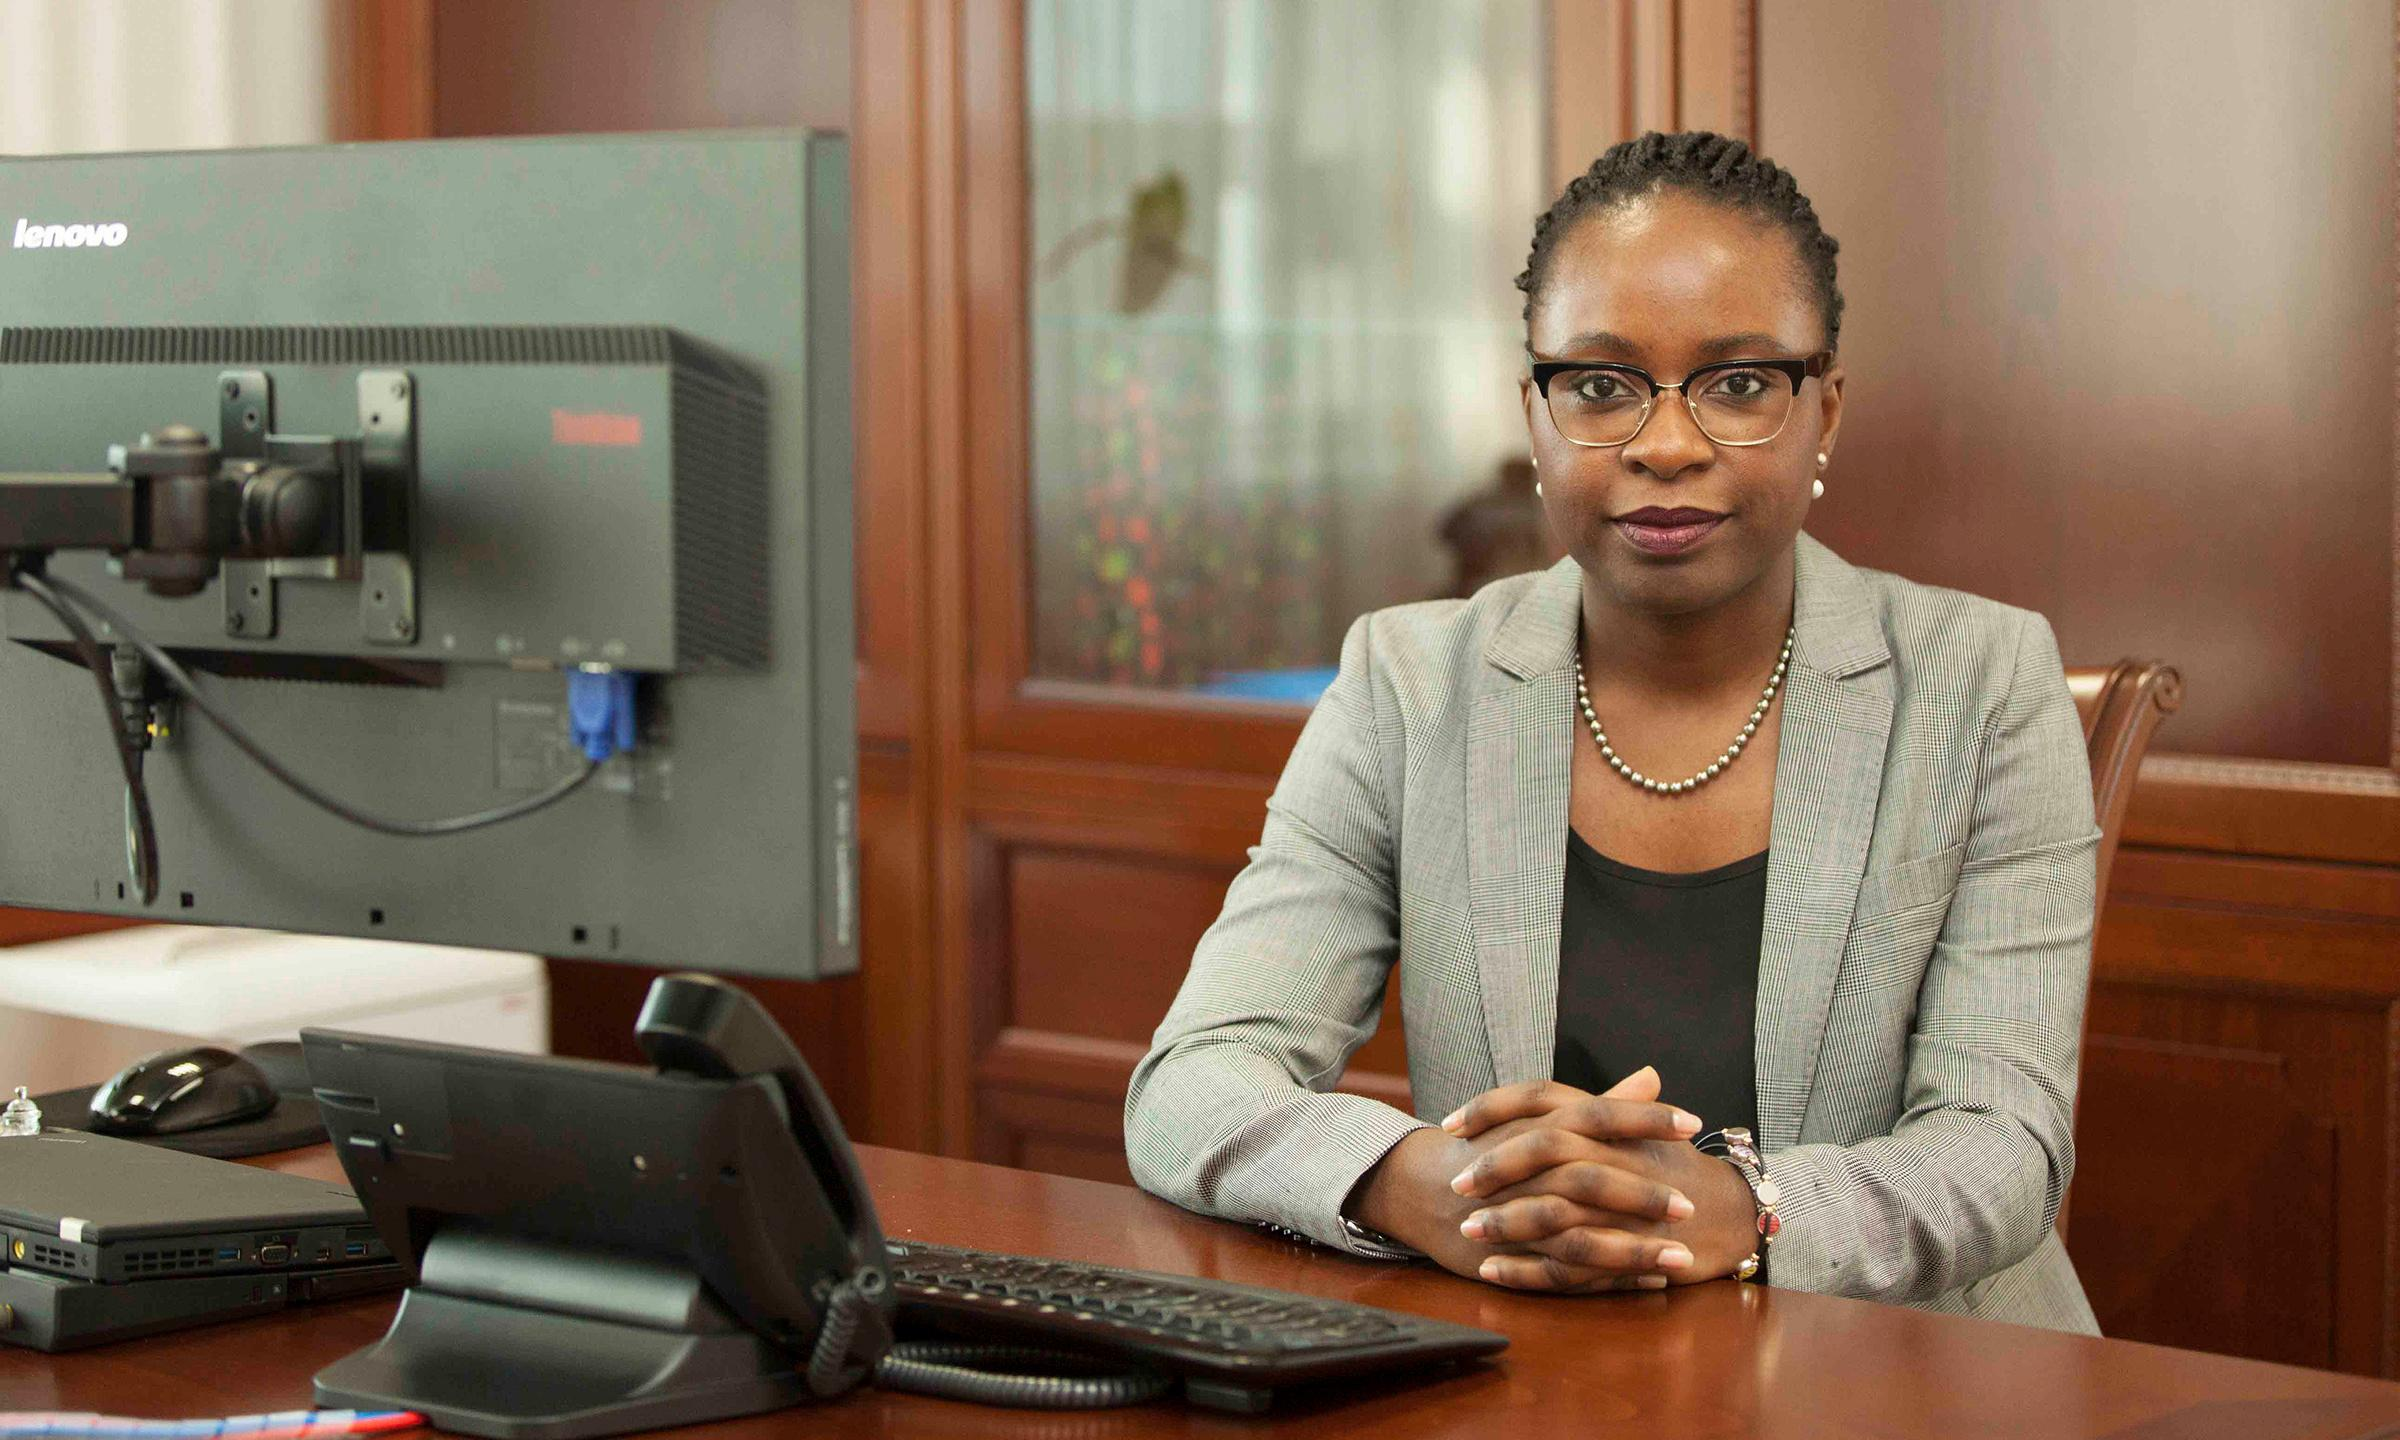 Africa's young leaders face a testing 2020